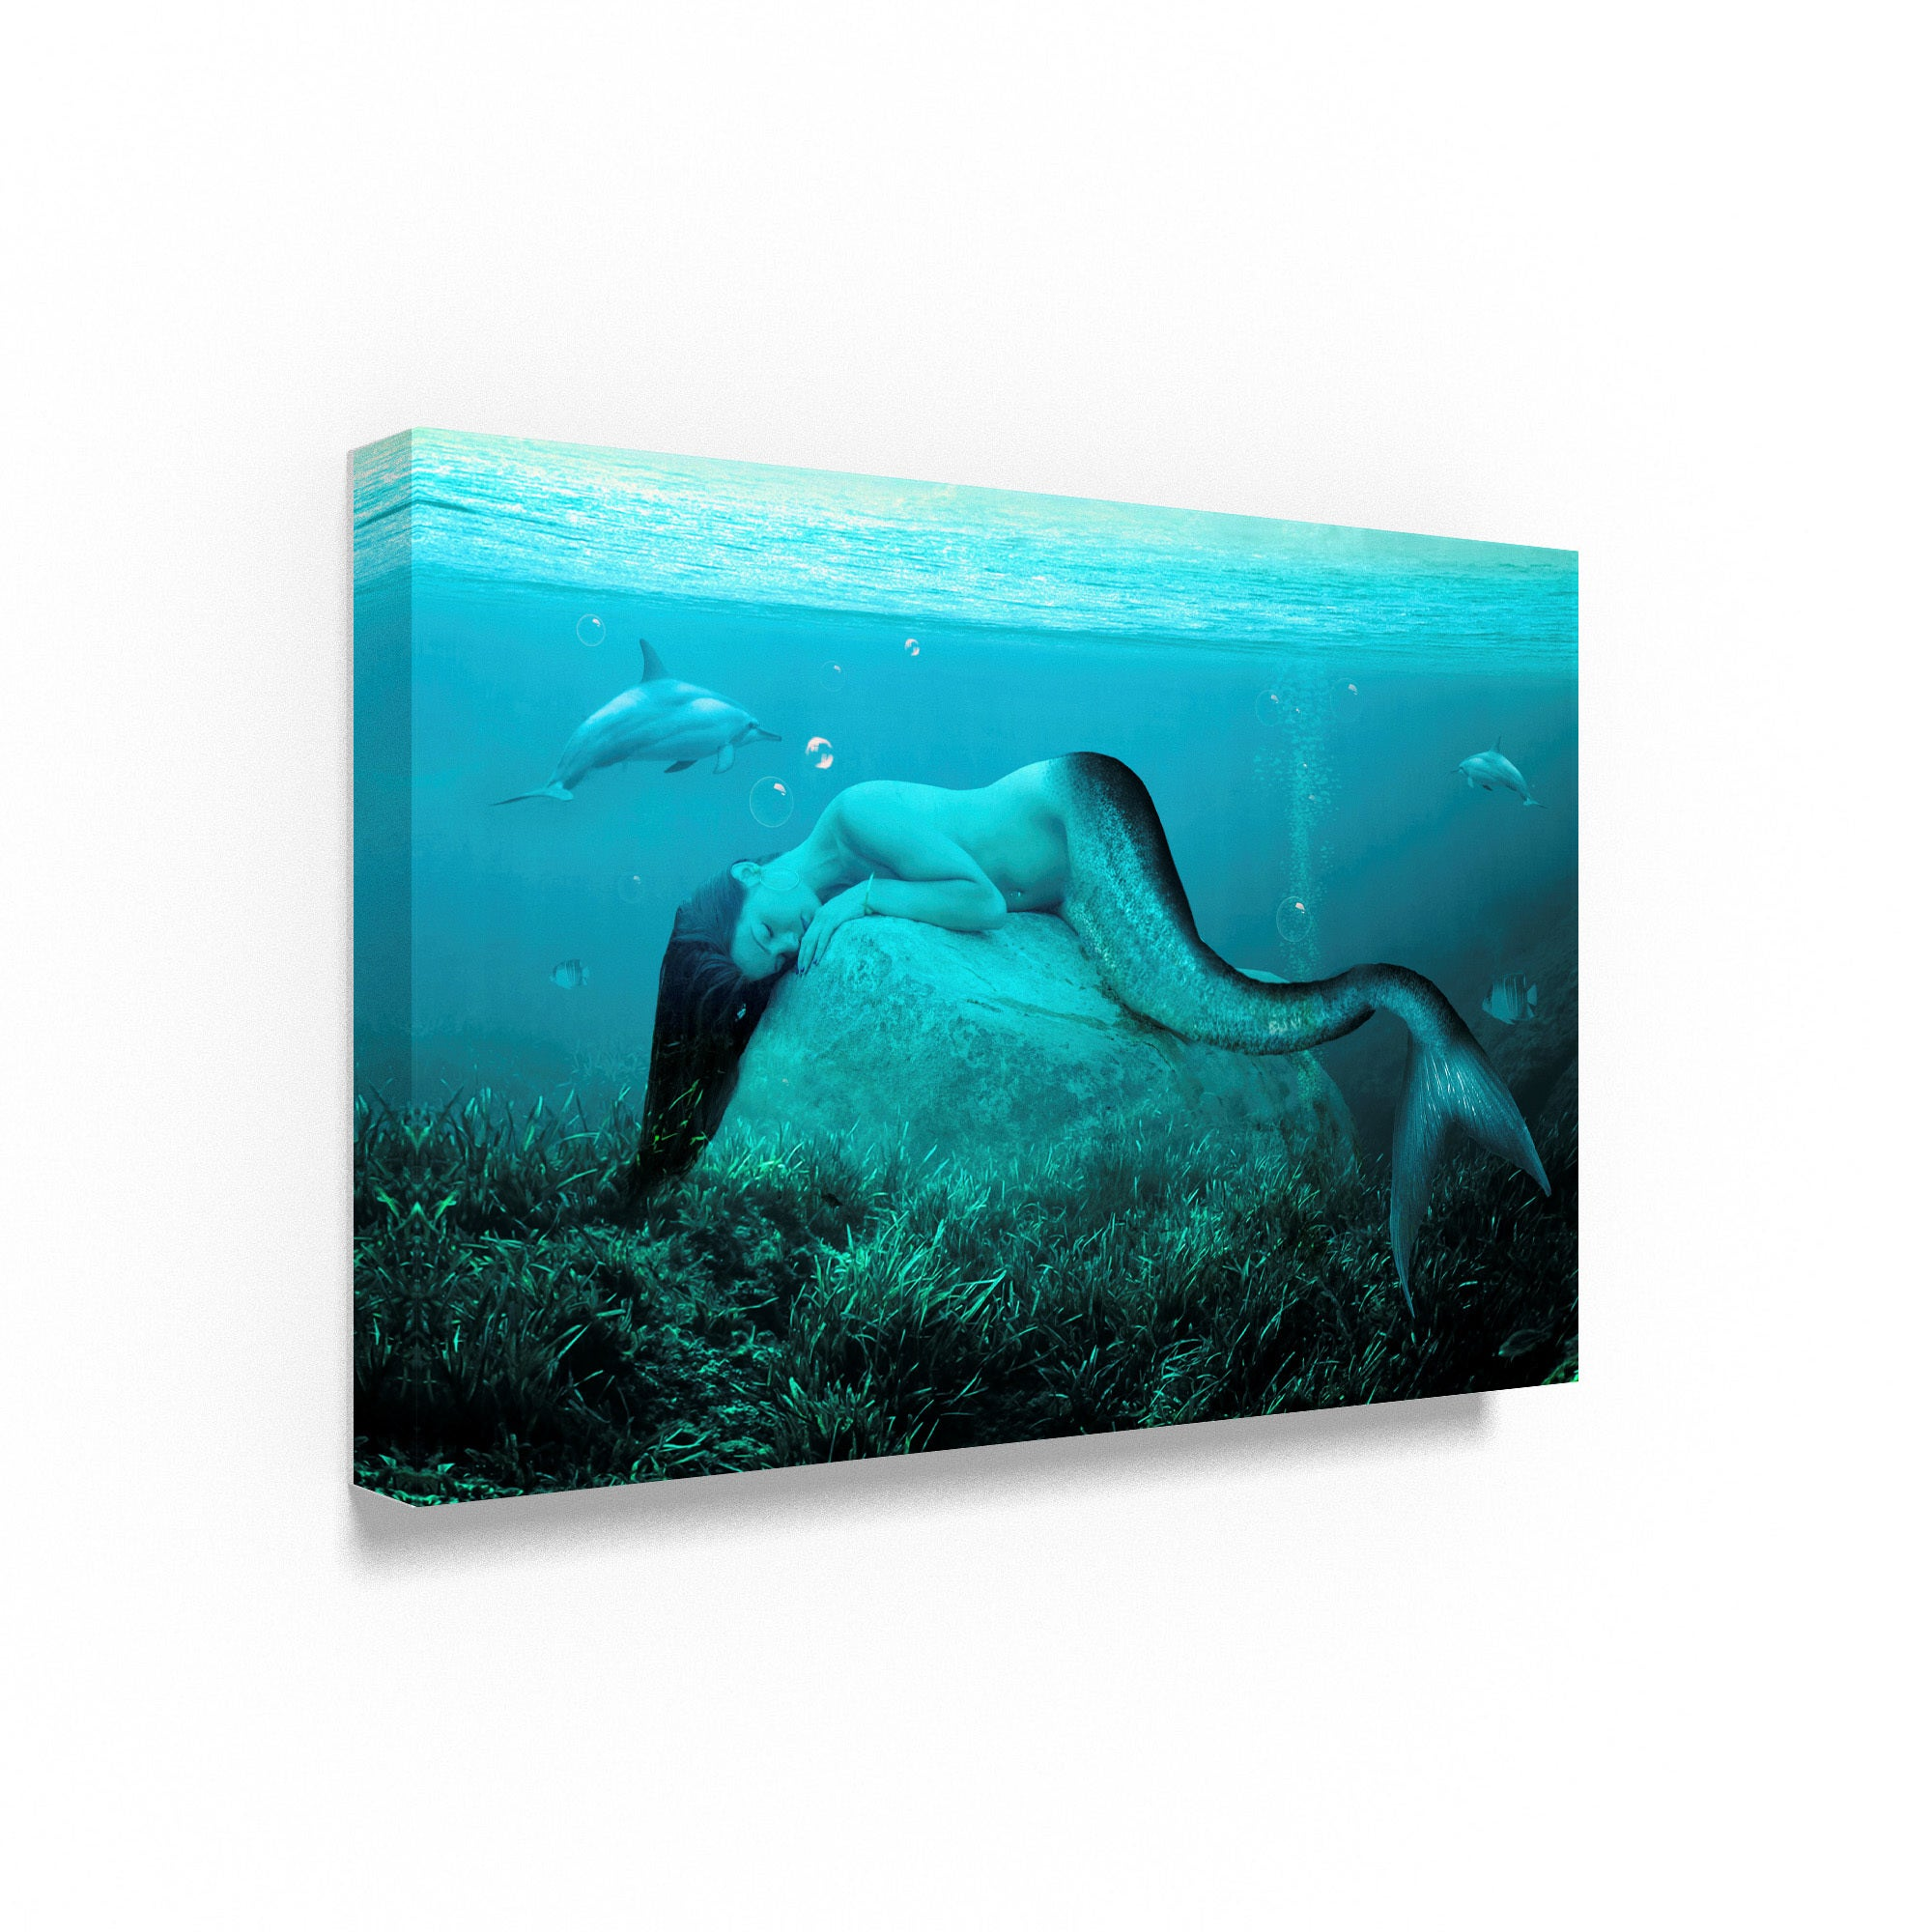 Shop Ata Alishahi \'Sleeping Mermaid\' Canvas Art - On Sale - Free ...